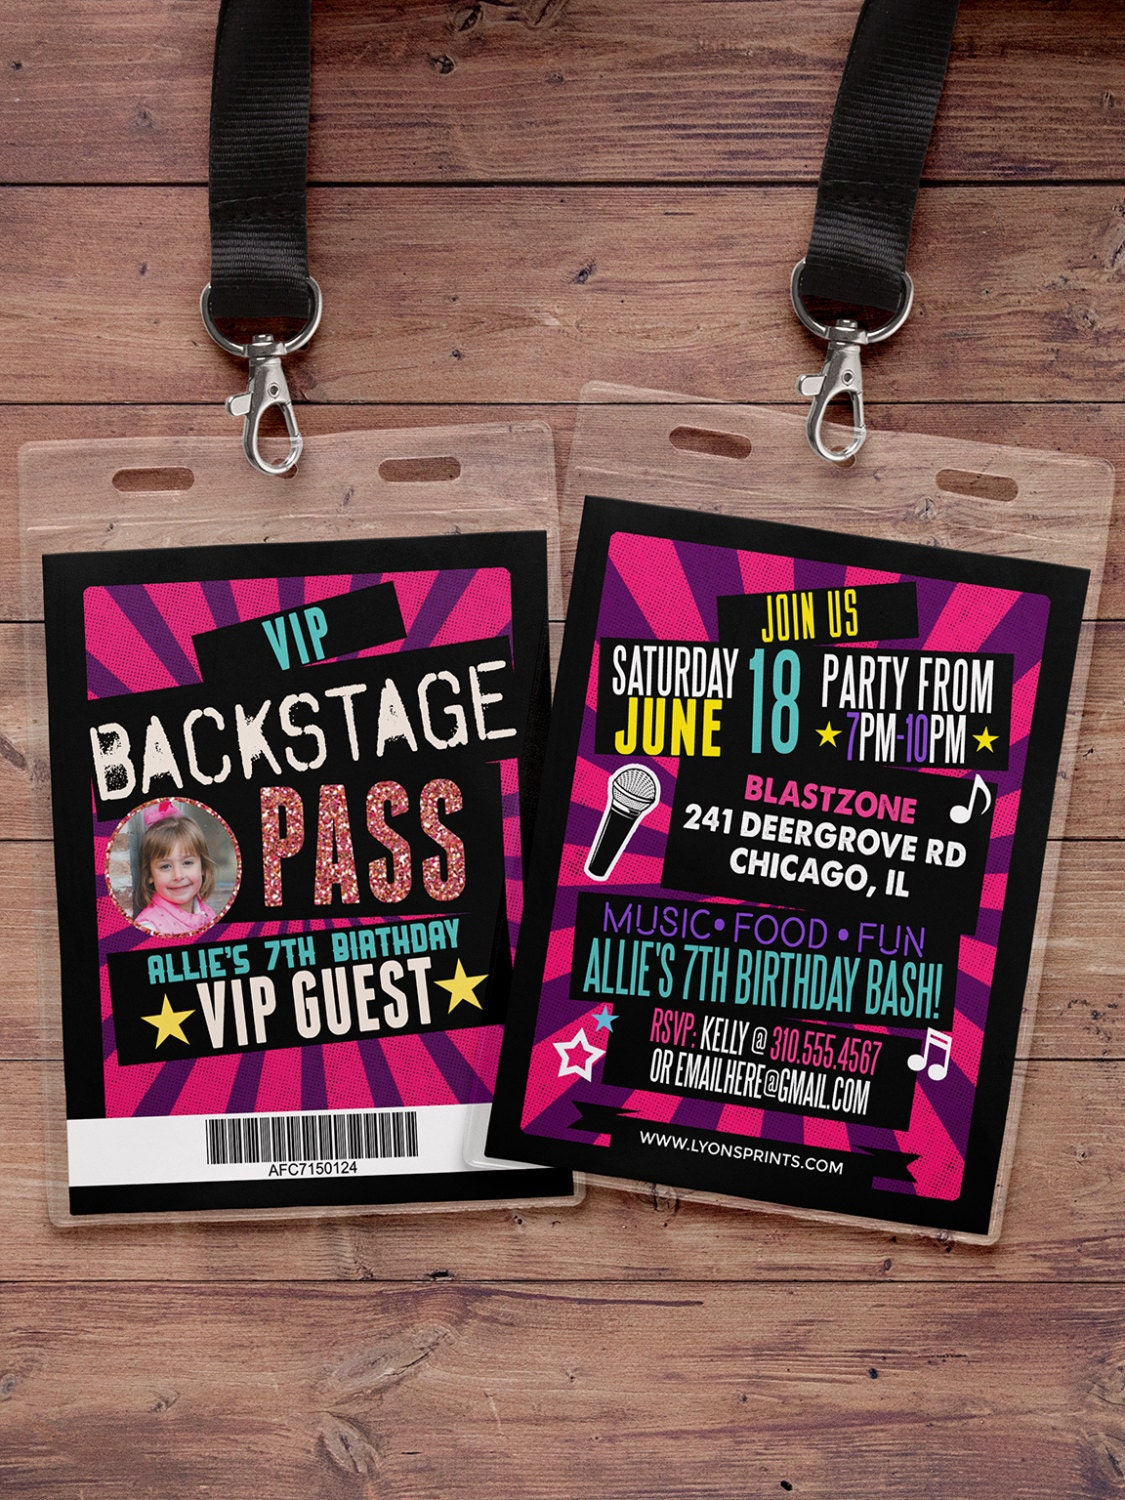 Birthday Invitation, Rock Star, VIP PASS, Backstage Pass, Concert Ticket, Birthday  Invitation, Wedding, Baby Shower, Party Favor  Concert Ticket Birthday Invitations